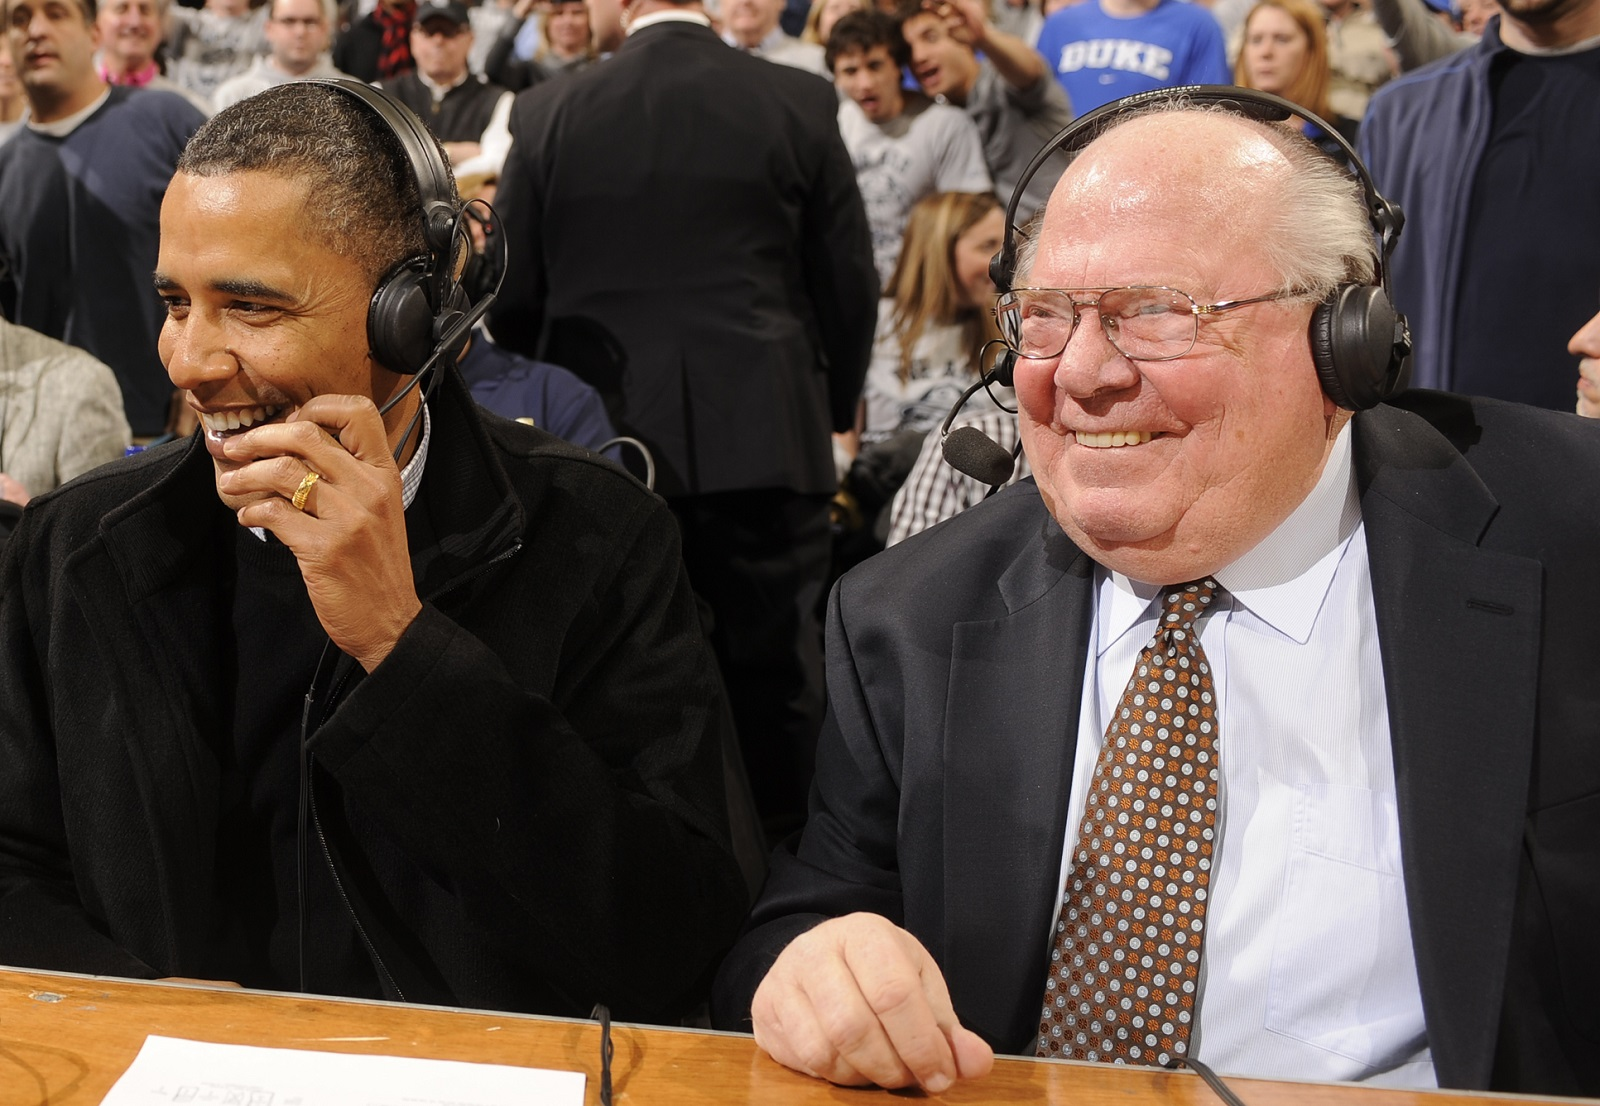 CBS commentator Verne Lindquist, right, seated with then-President Barack Obama, chats with The News about his Aaron Craft anecdote and the legendary Laettner call. (Getty Images)